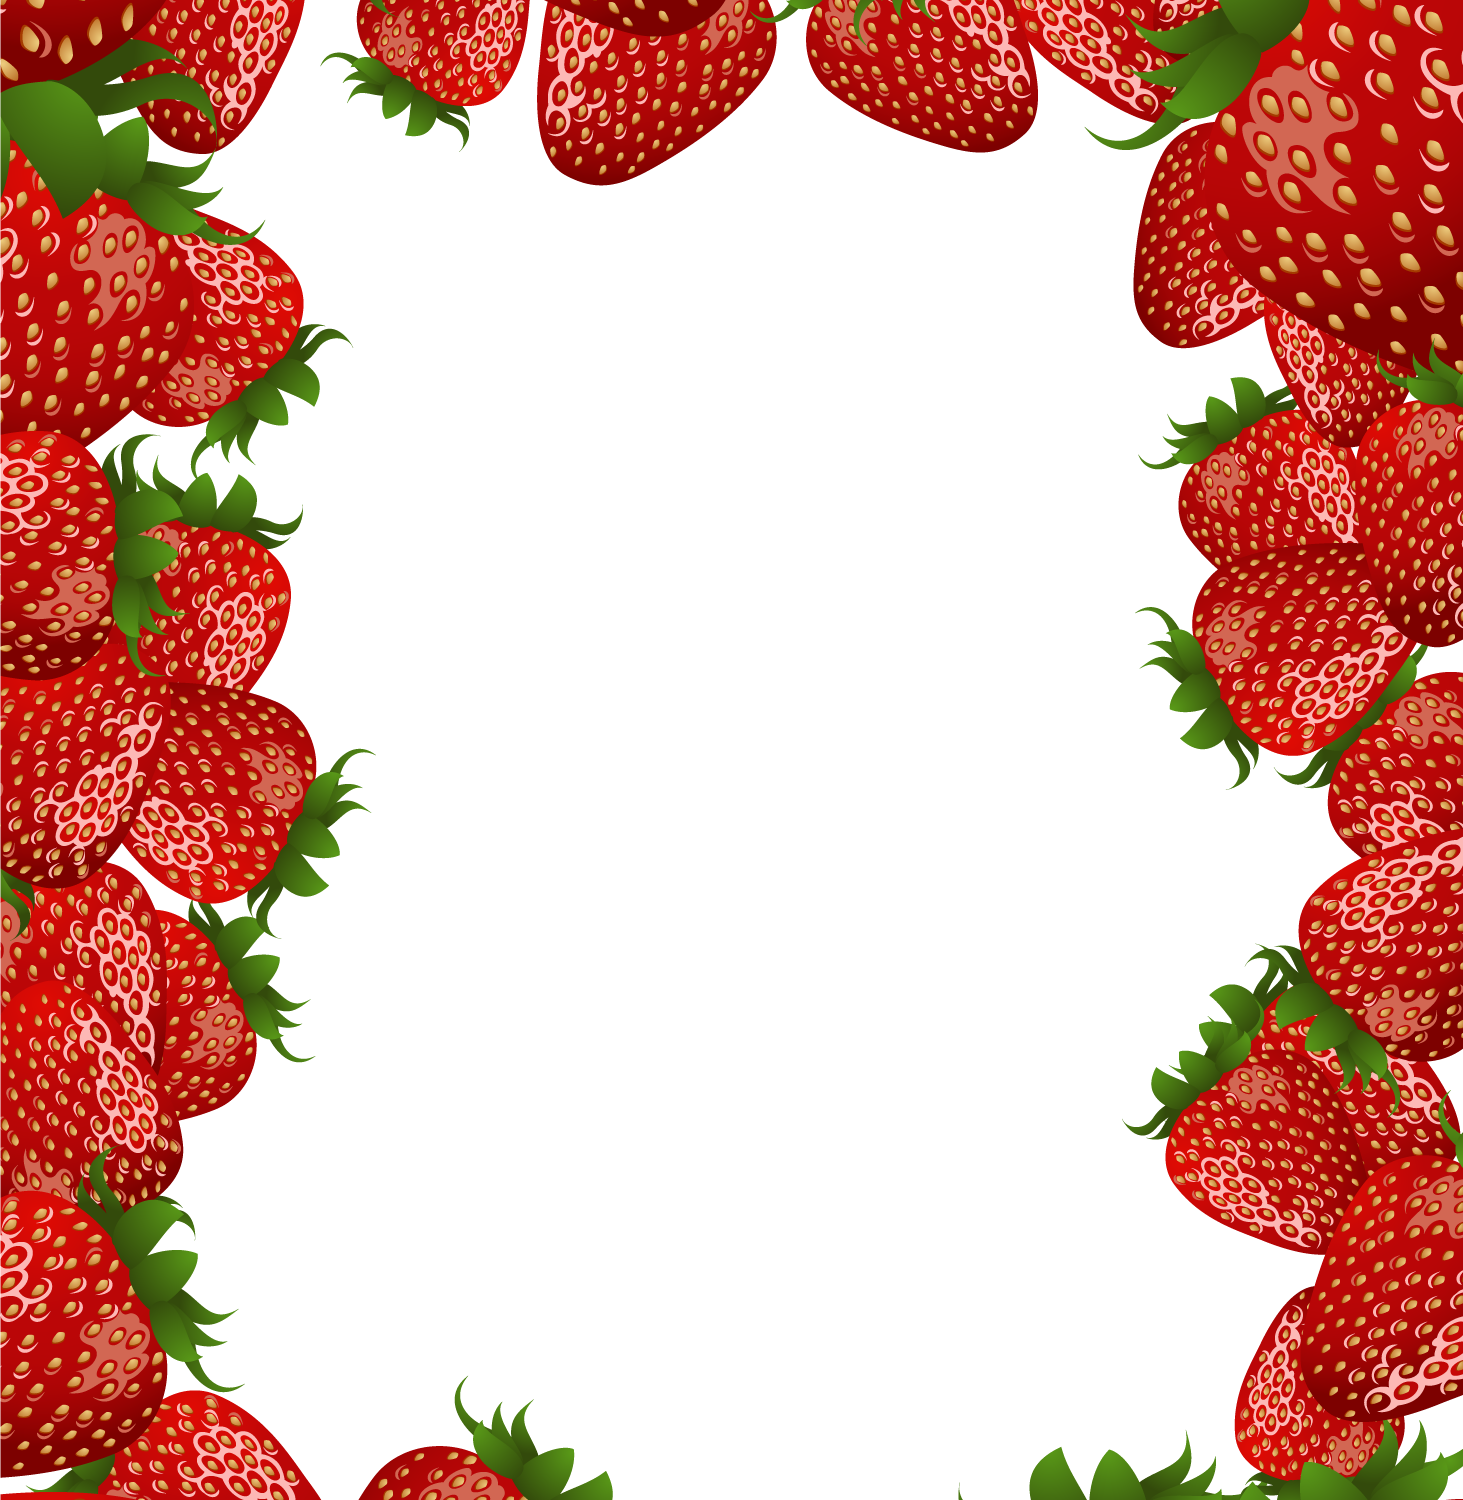 Strawberries clipart garden. Strawberry plant clip art